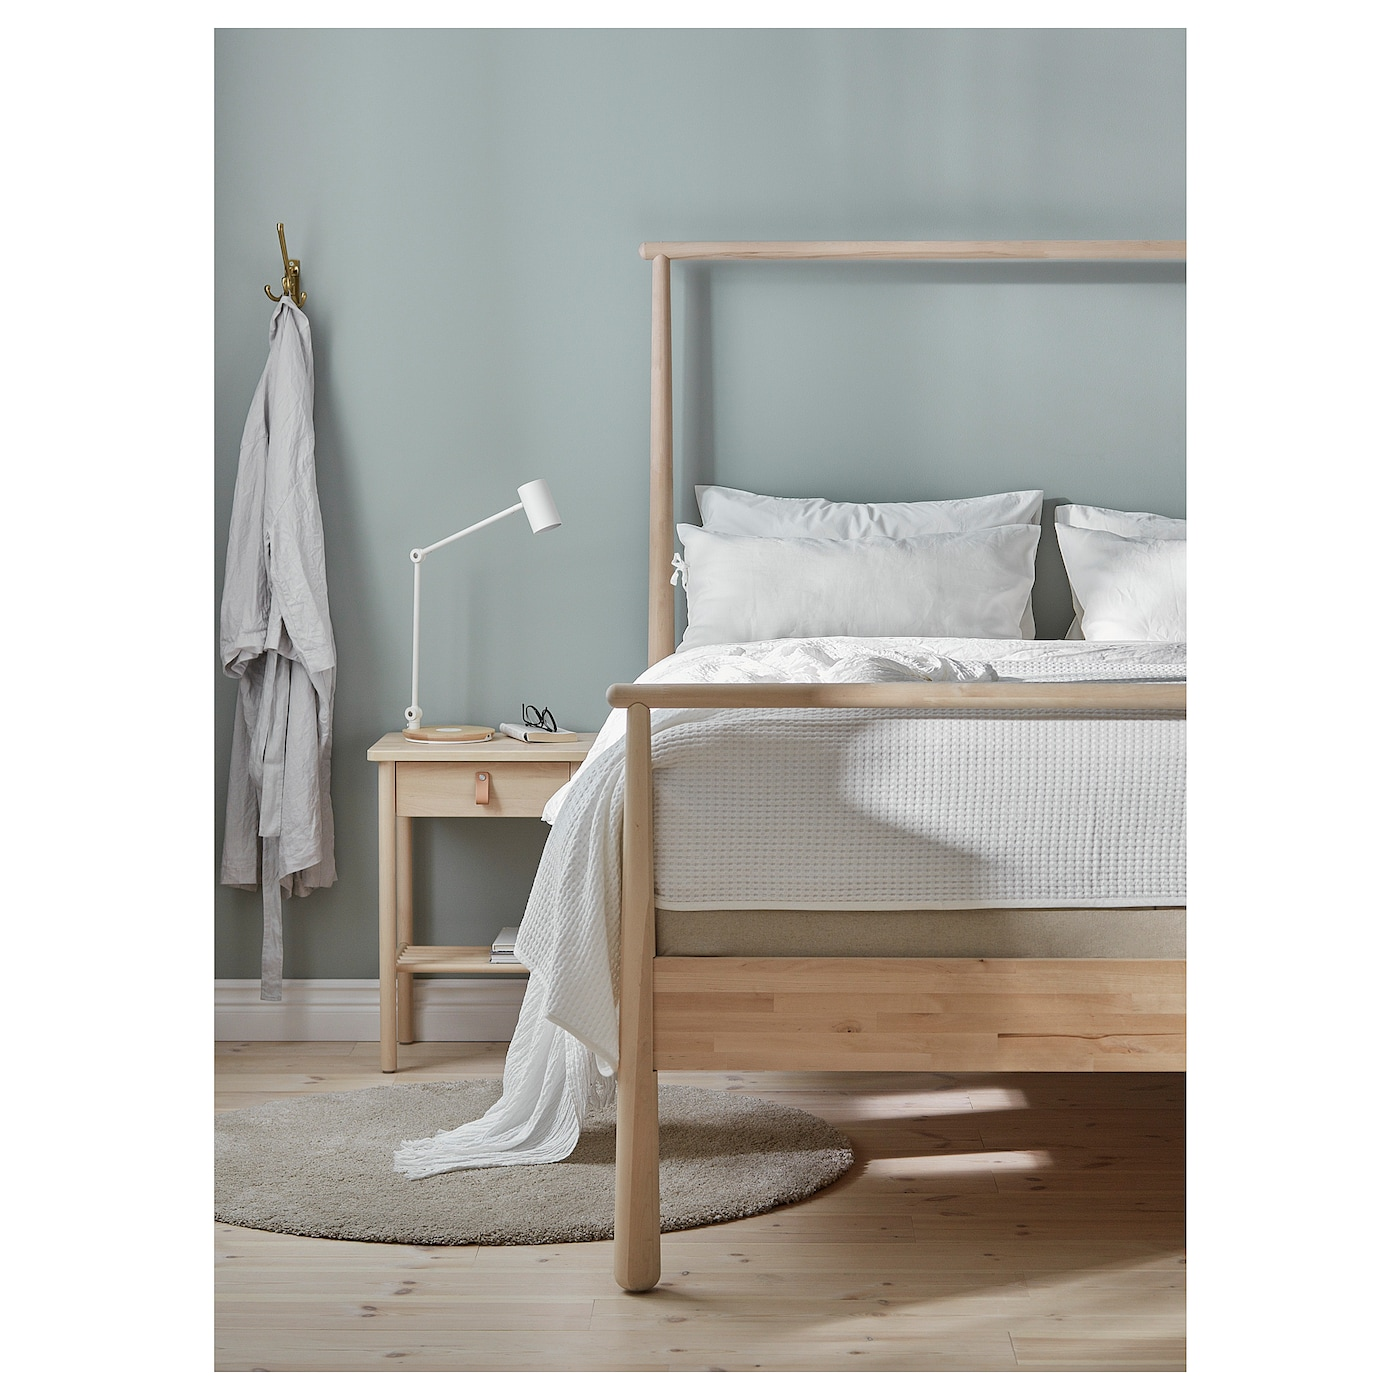 IKEA GJÖRA bed frame Use the low end as a headboard or the other way around. You choose!